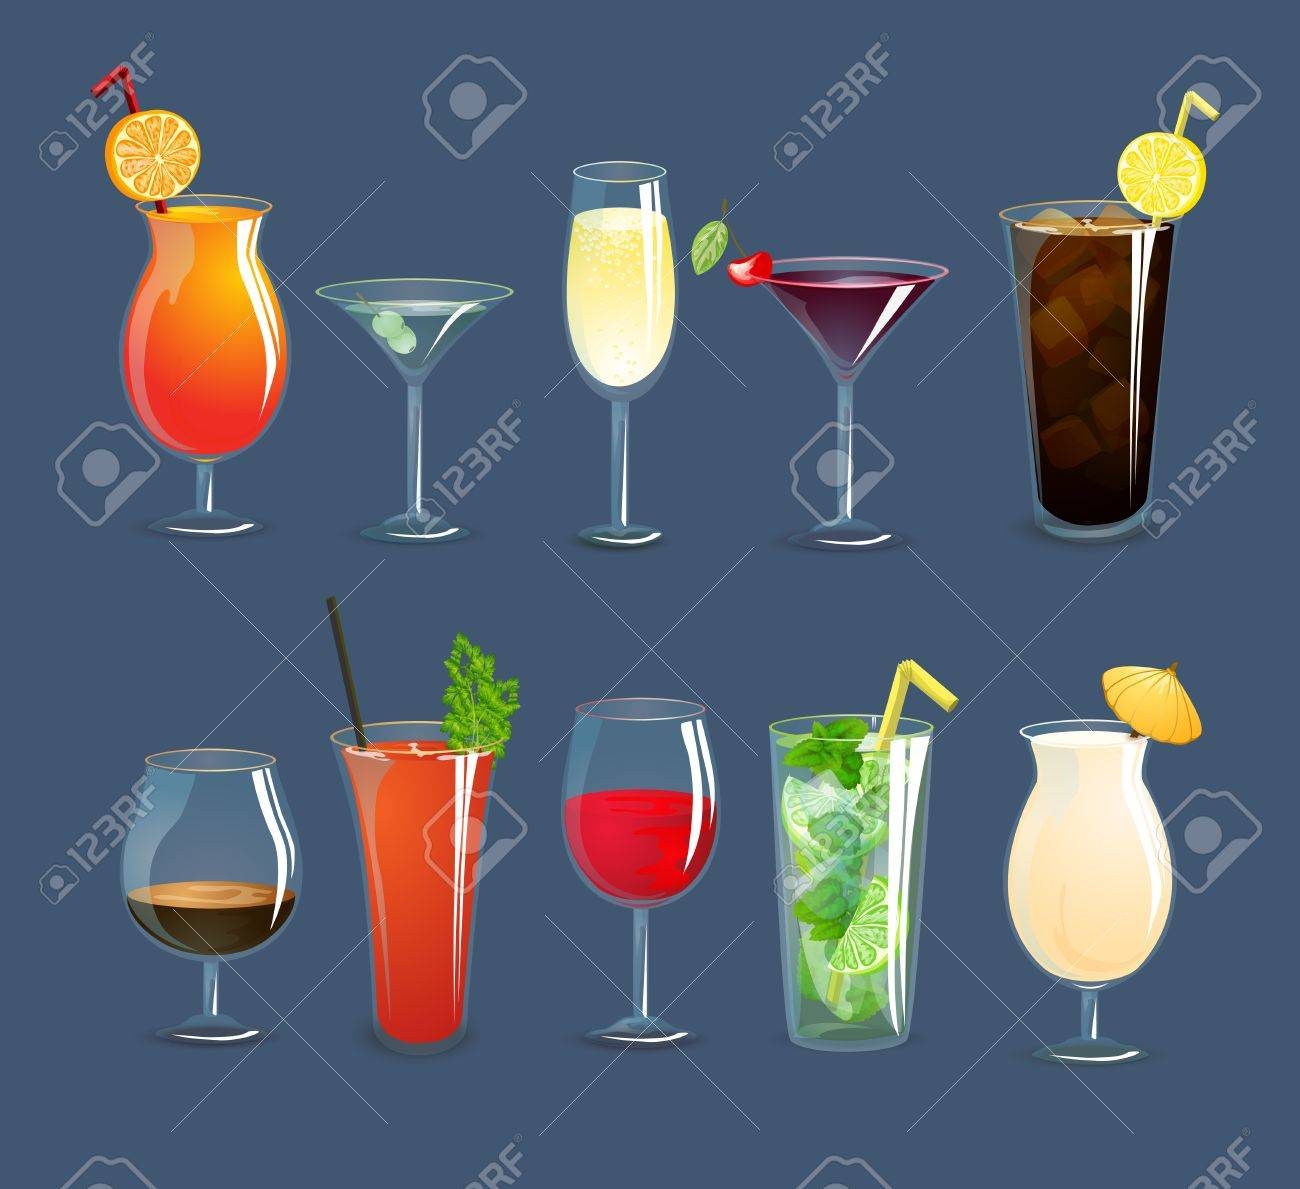 Alcohol drinks and cocktails in glasses decorative icons set isolated vector illustration - 38301850